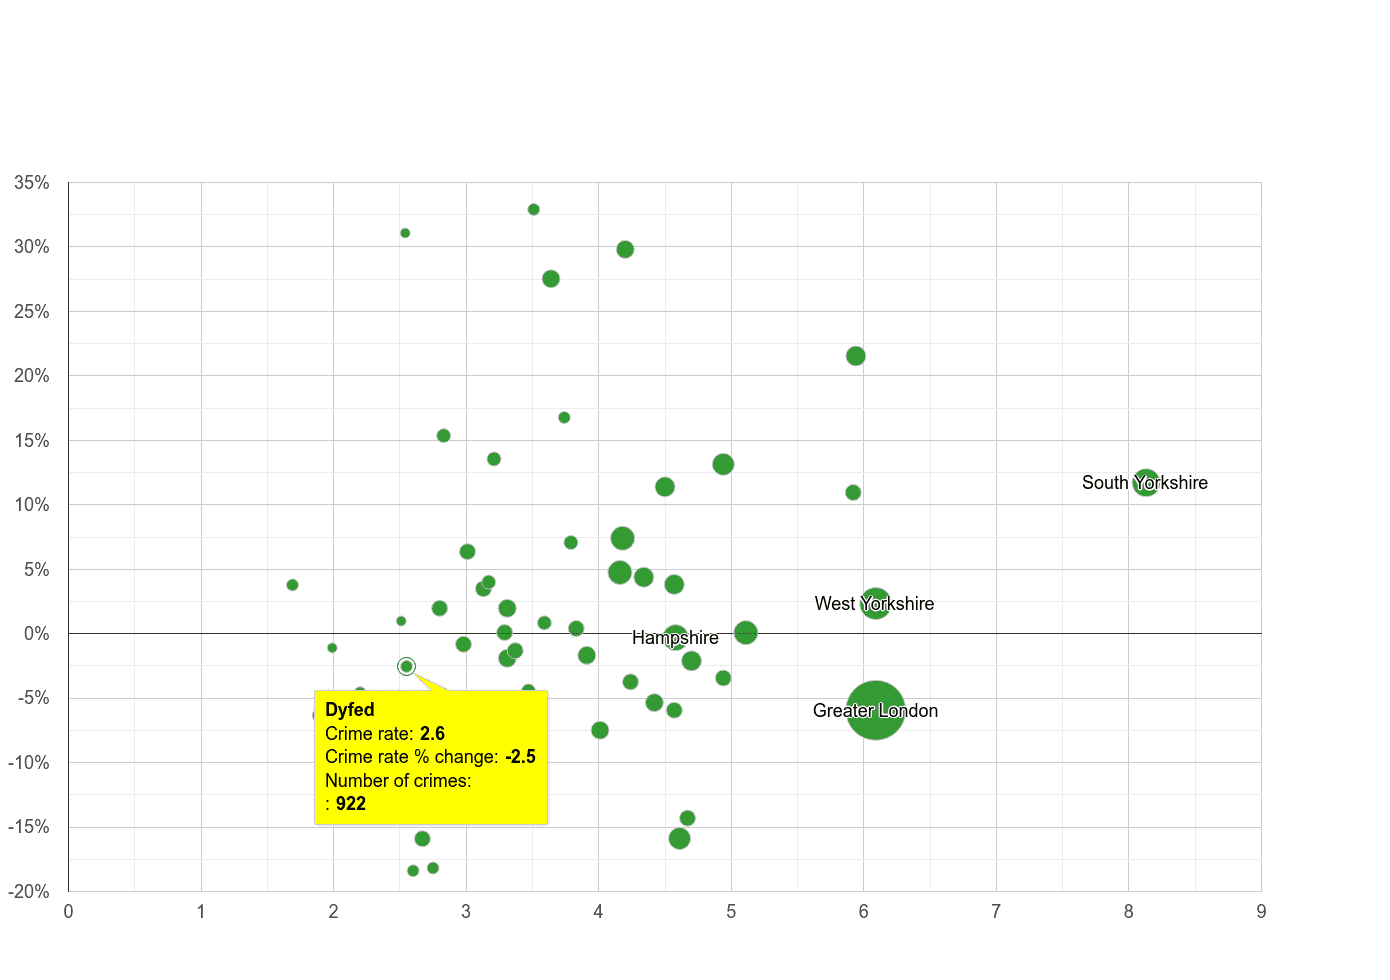 Dyfed burglary crime rate compared to other counties